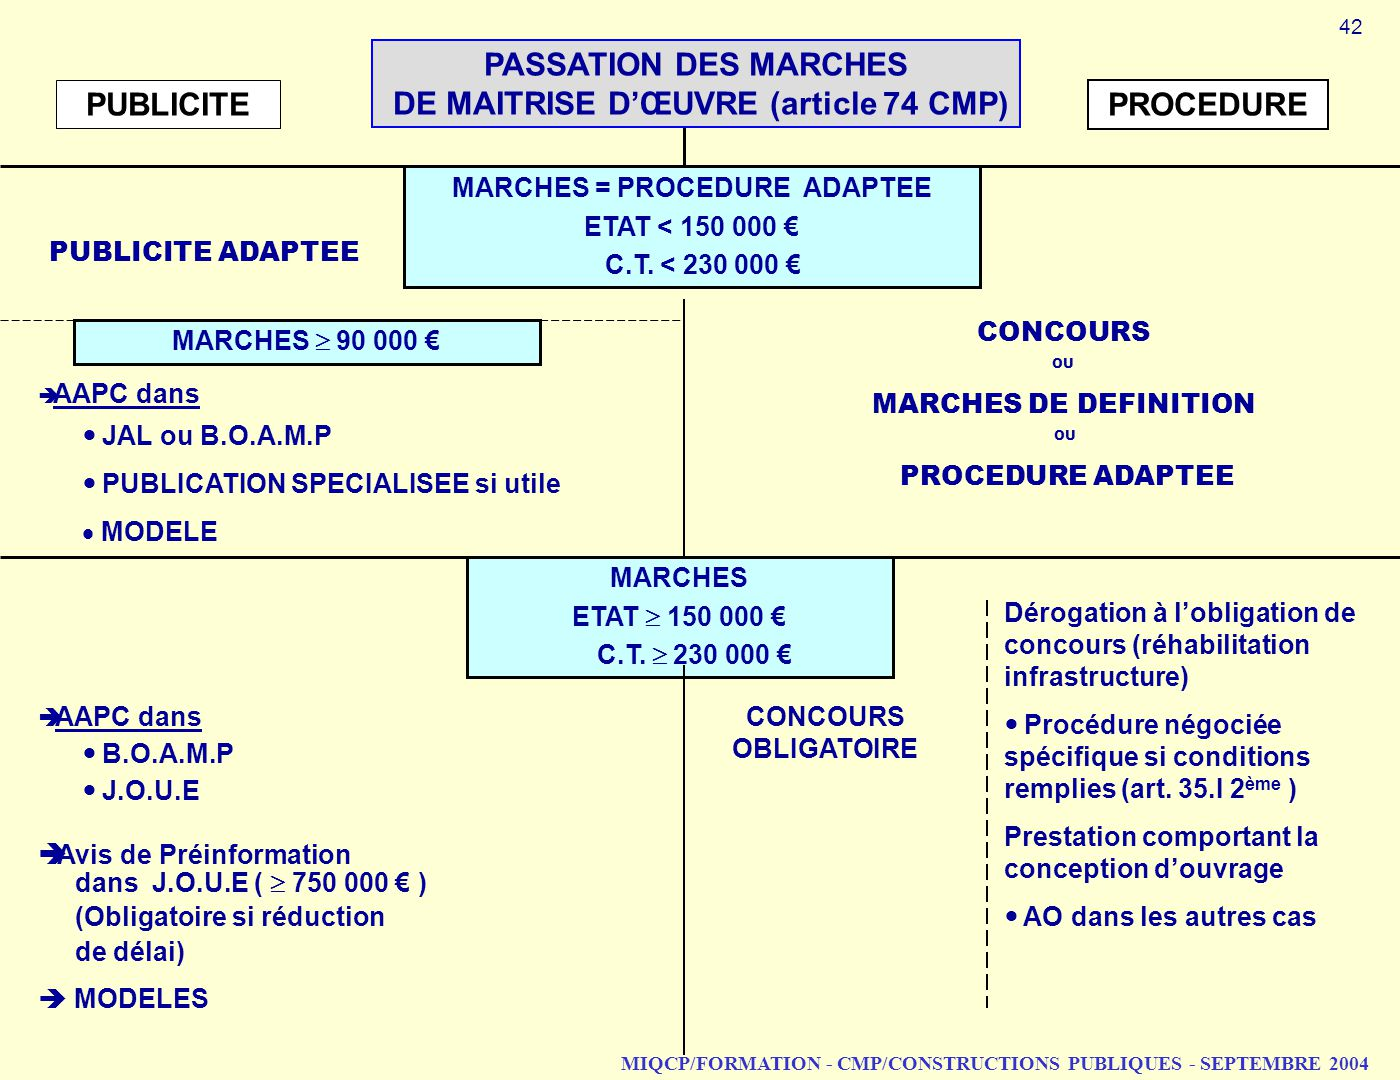 DE MAITRISE D'ŒUVRE (article 74 CMP) PUBLICITE PROCEDURE